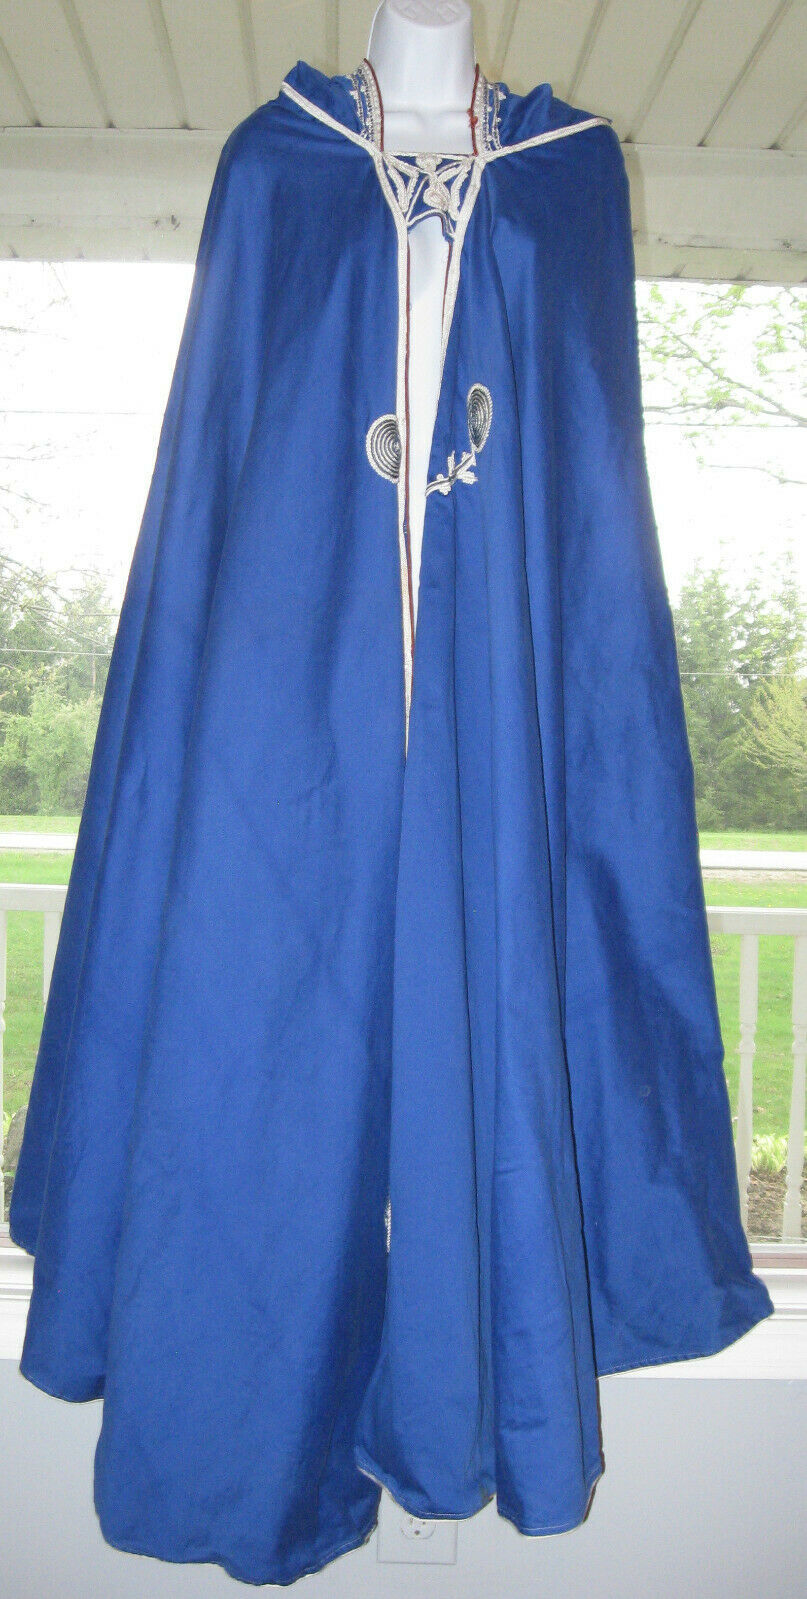 Primary image for Blue Hood Cloak Cape Anime Renaissance Cosplay Game Of Thrones Women Handmade